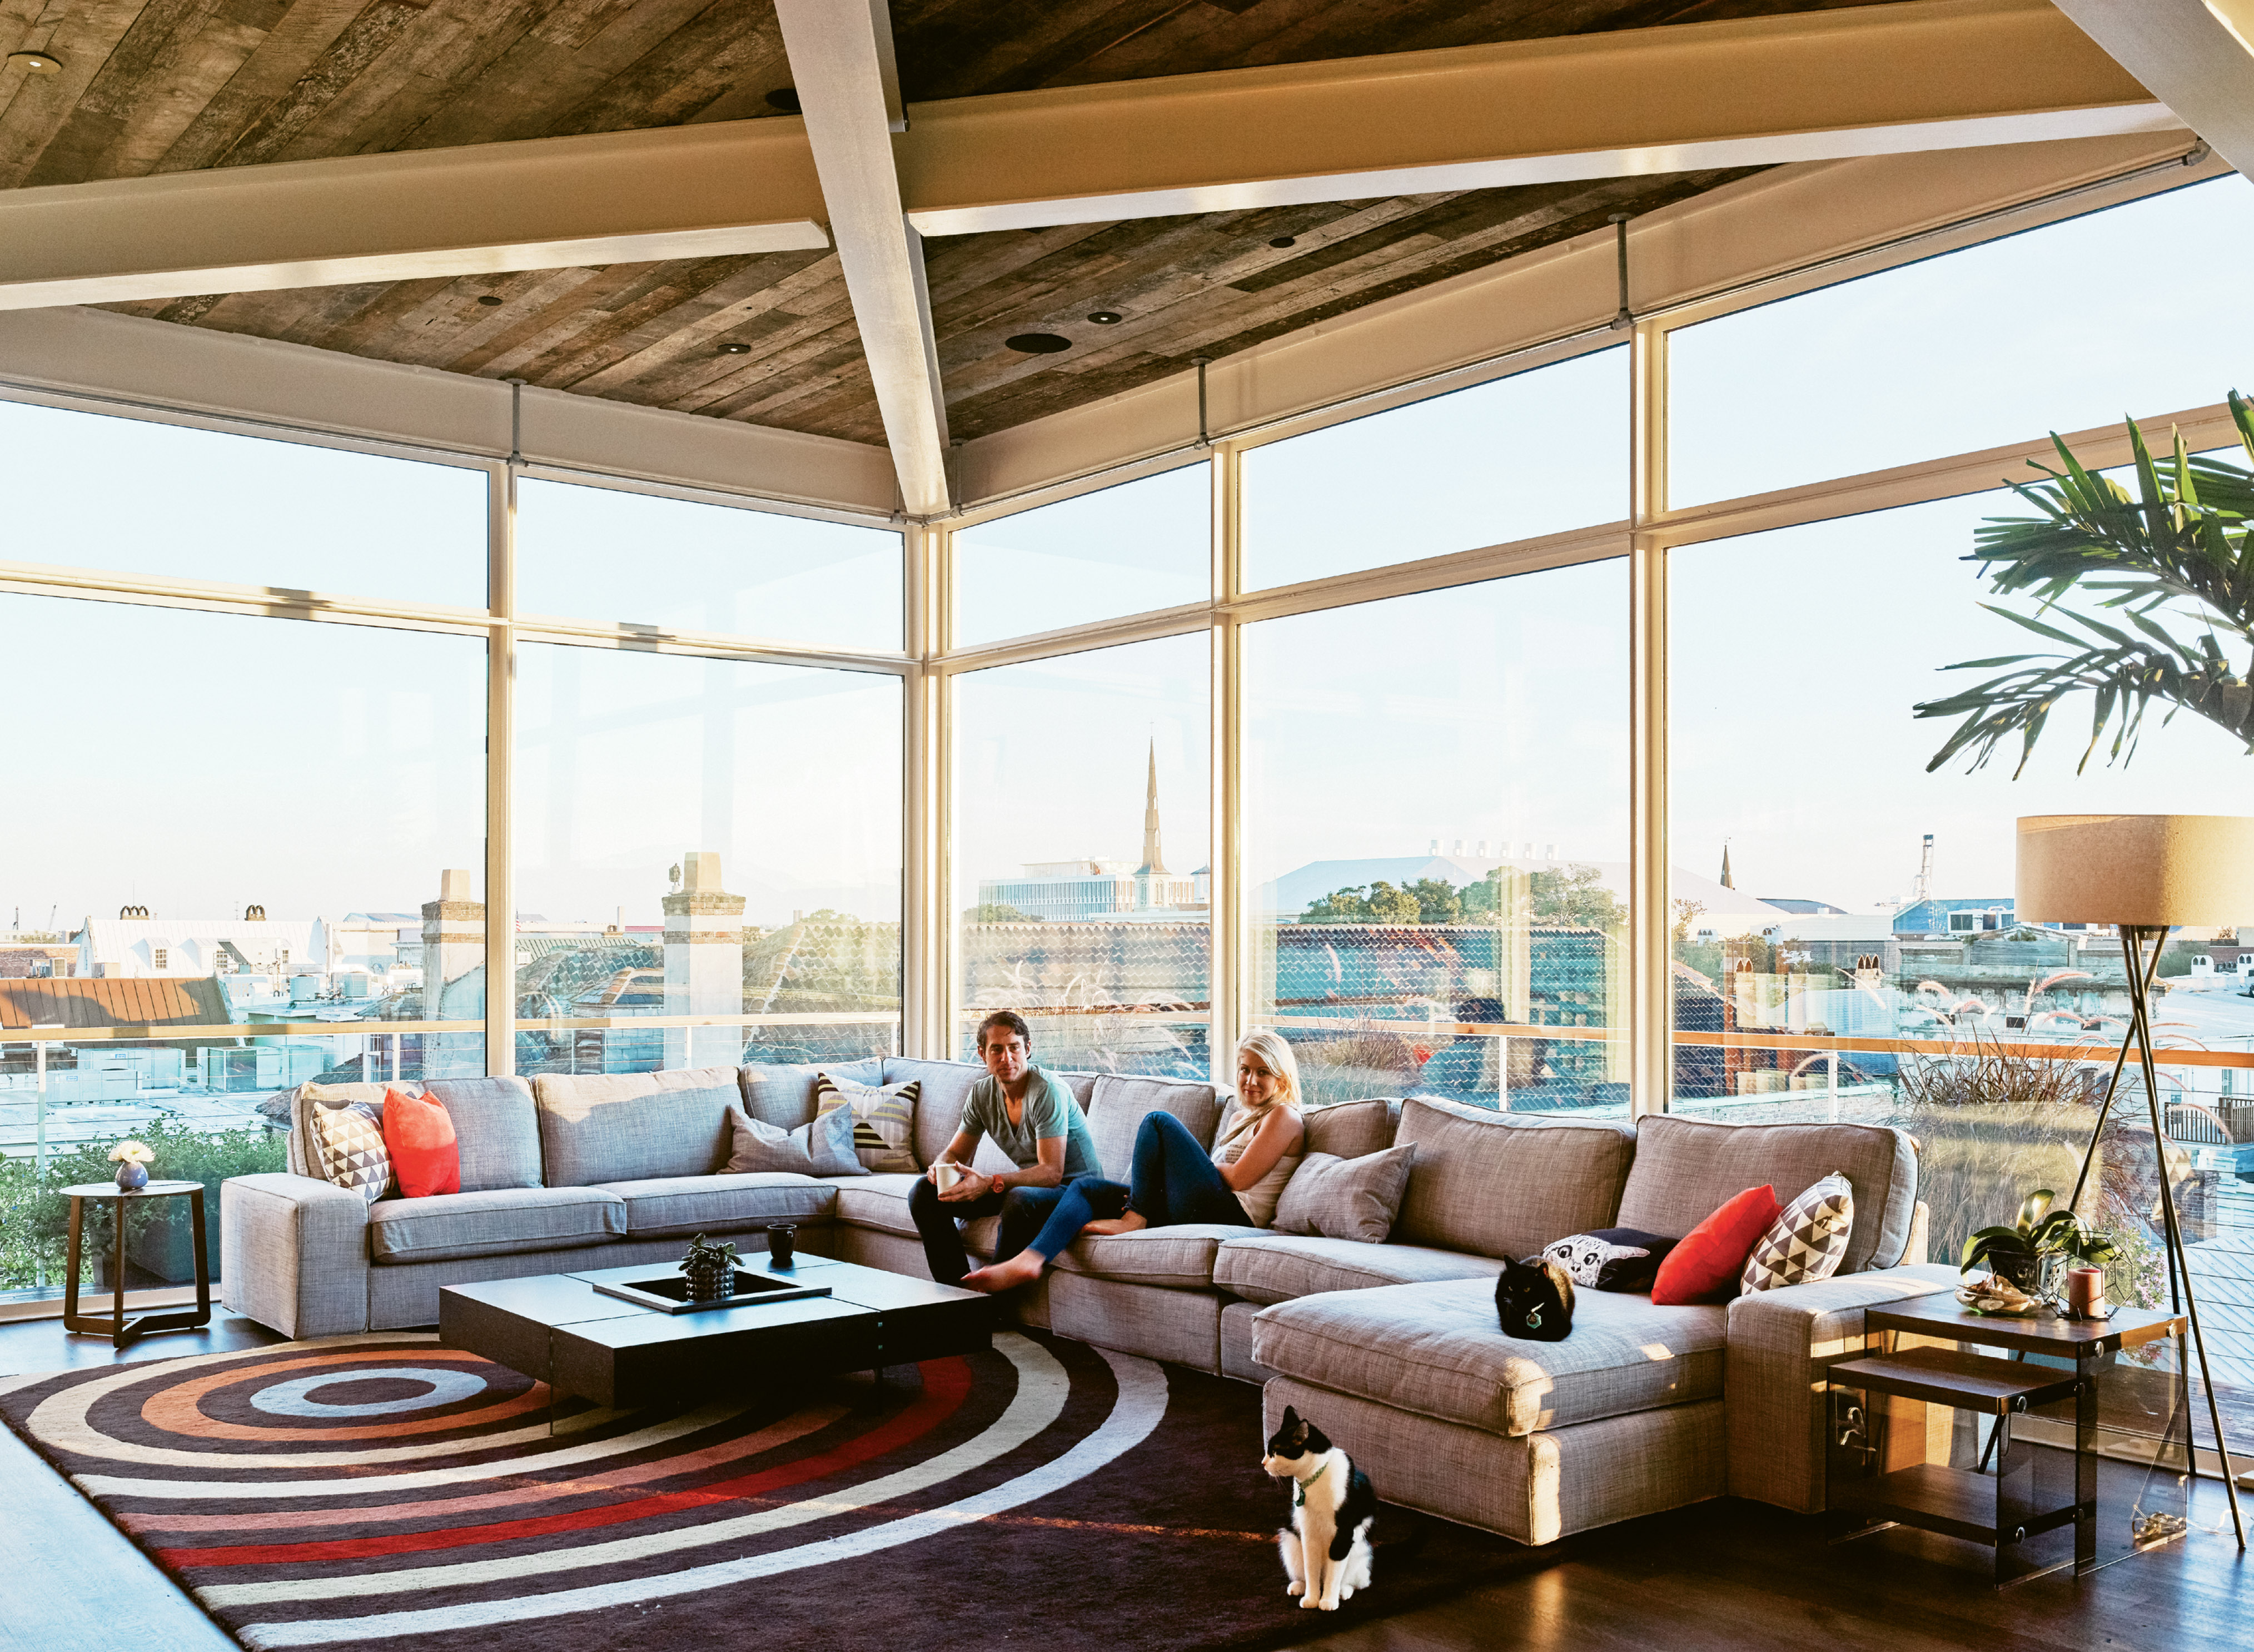 Yessian, pictured with girlfriend Arielle Stratton and cats Jean Michelle and Jean George, tackled the interior design himself, keeping the furnishings—such as this Ikea couch, West Elm lamp, and All Modern rug—minimal and letting the views take center stage.